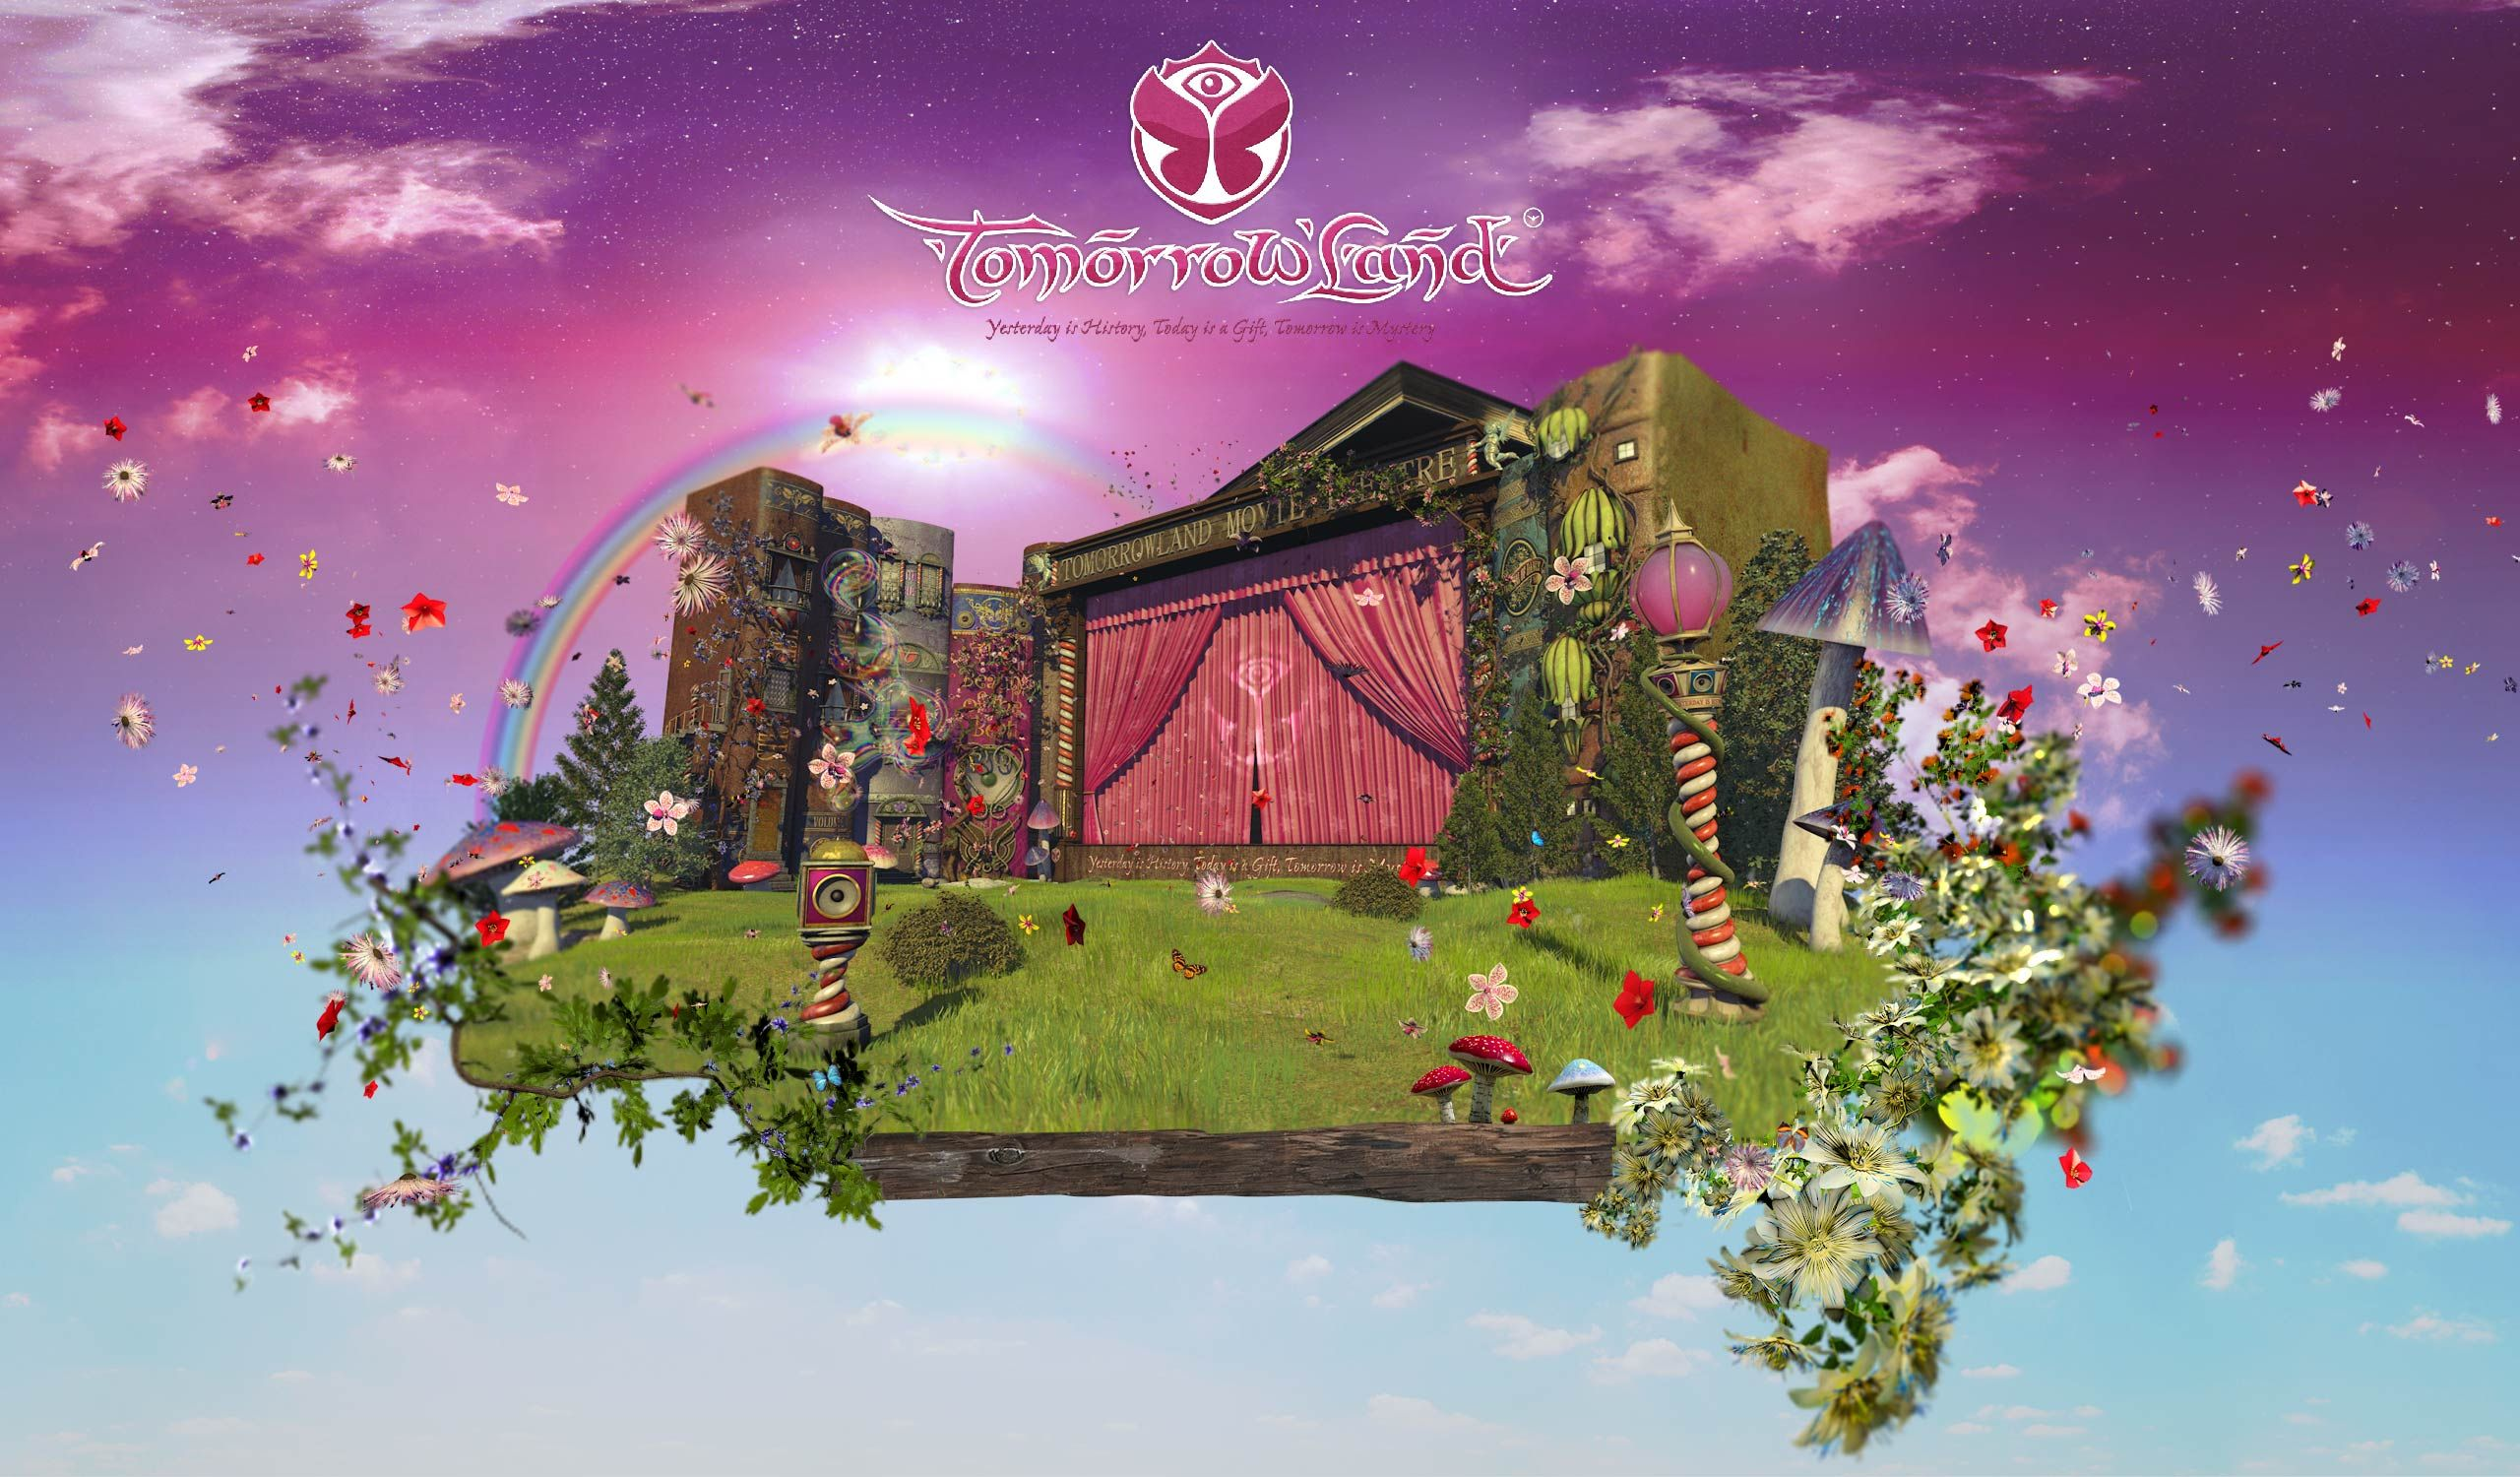 Tomorrowland 2012 hd wallpapers, logos, and some ranting ... Tomorrowland 2012 Wallpaper